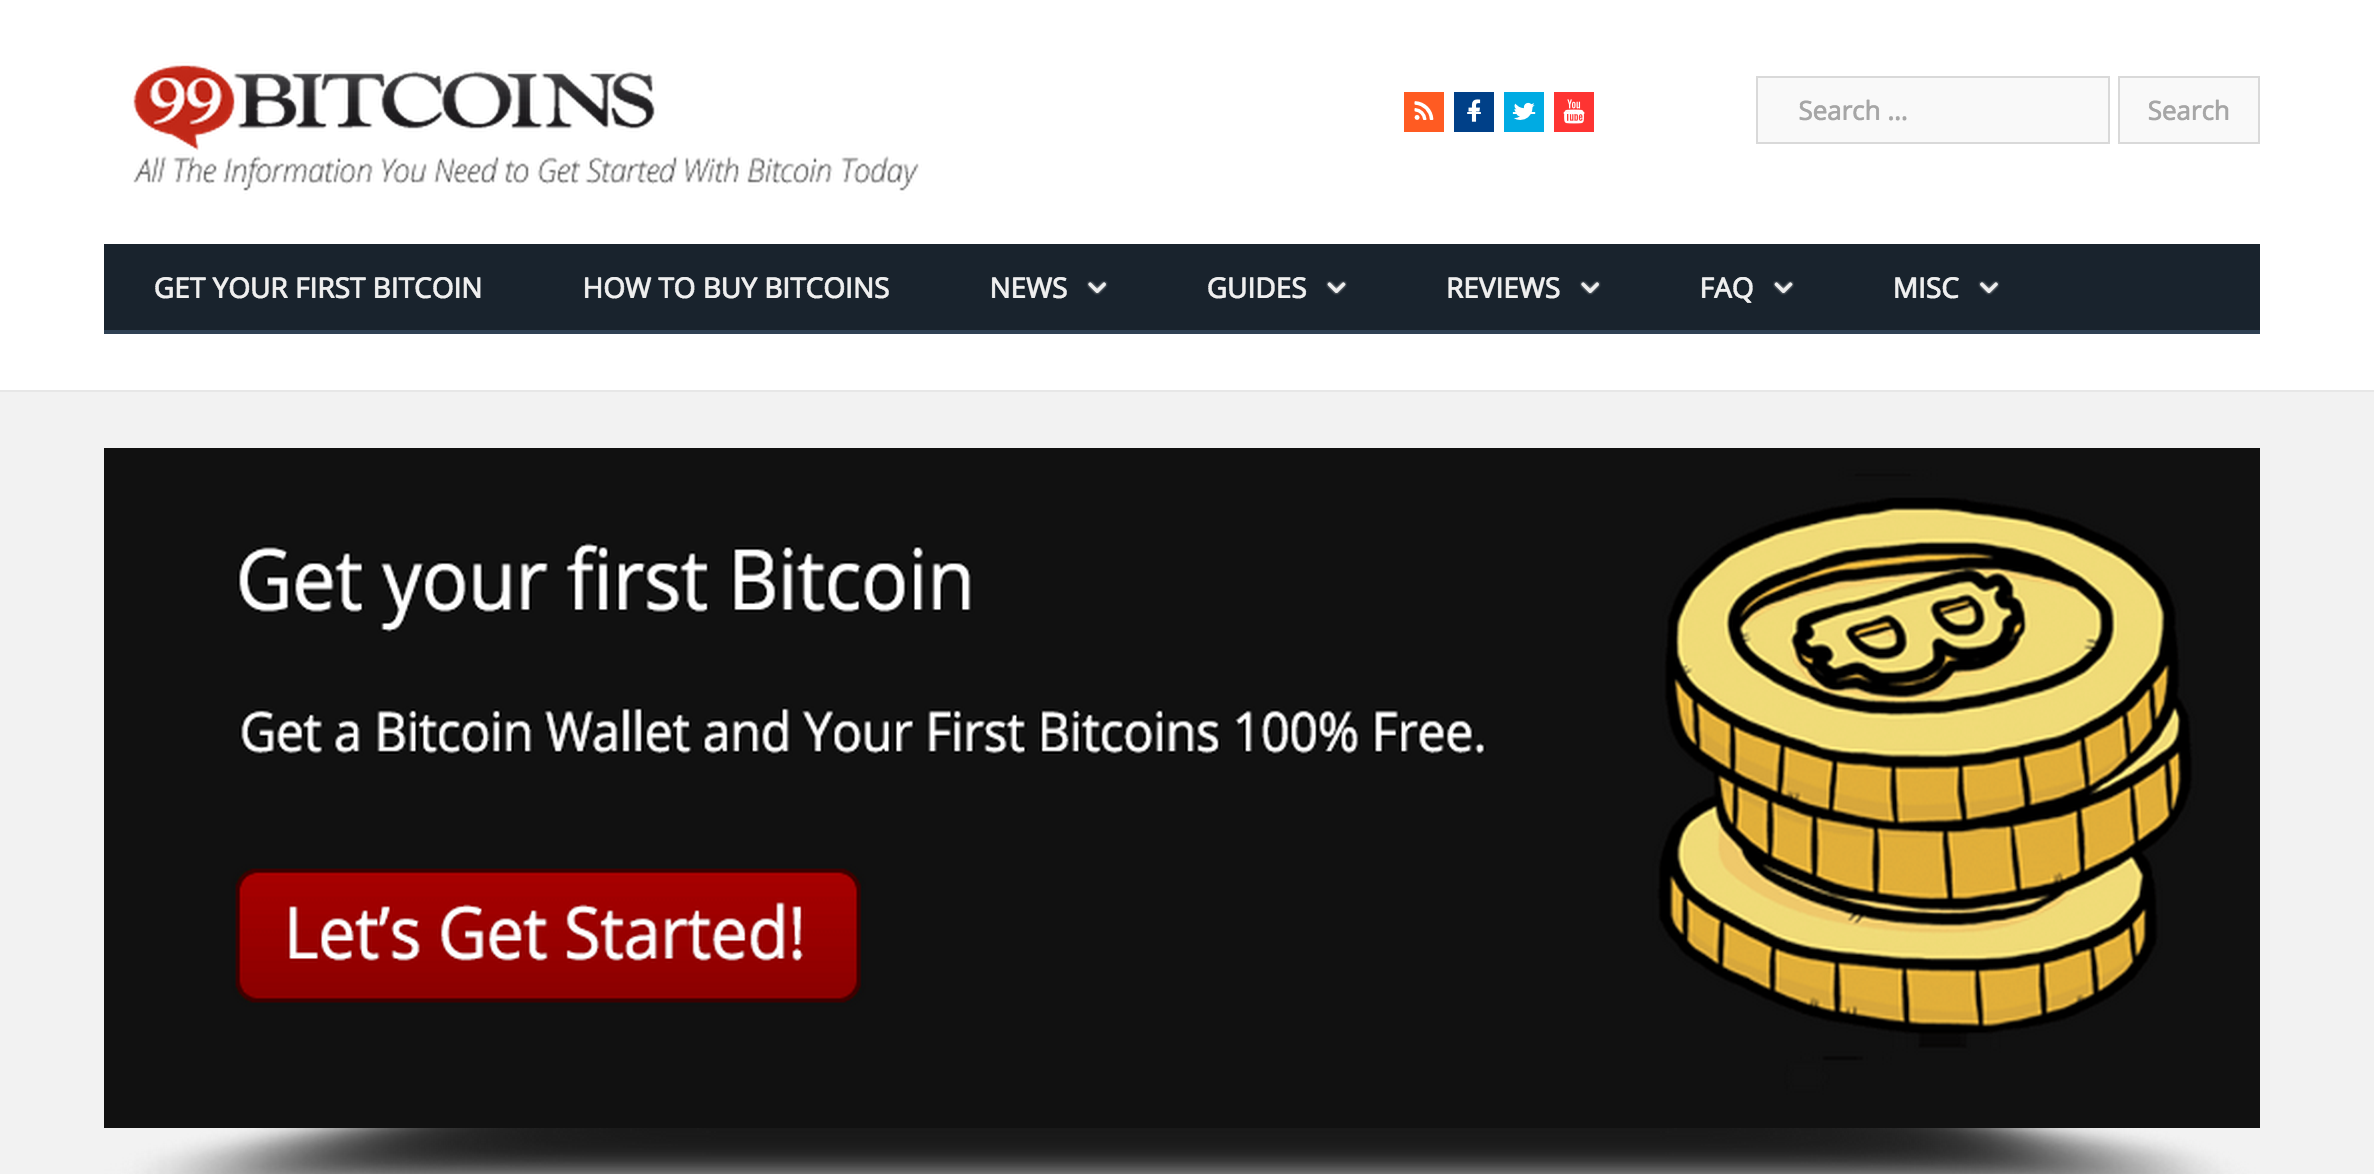 99Bitcoins screenshot